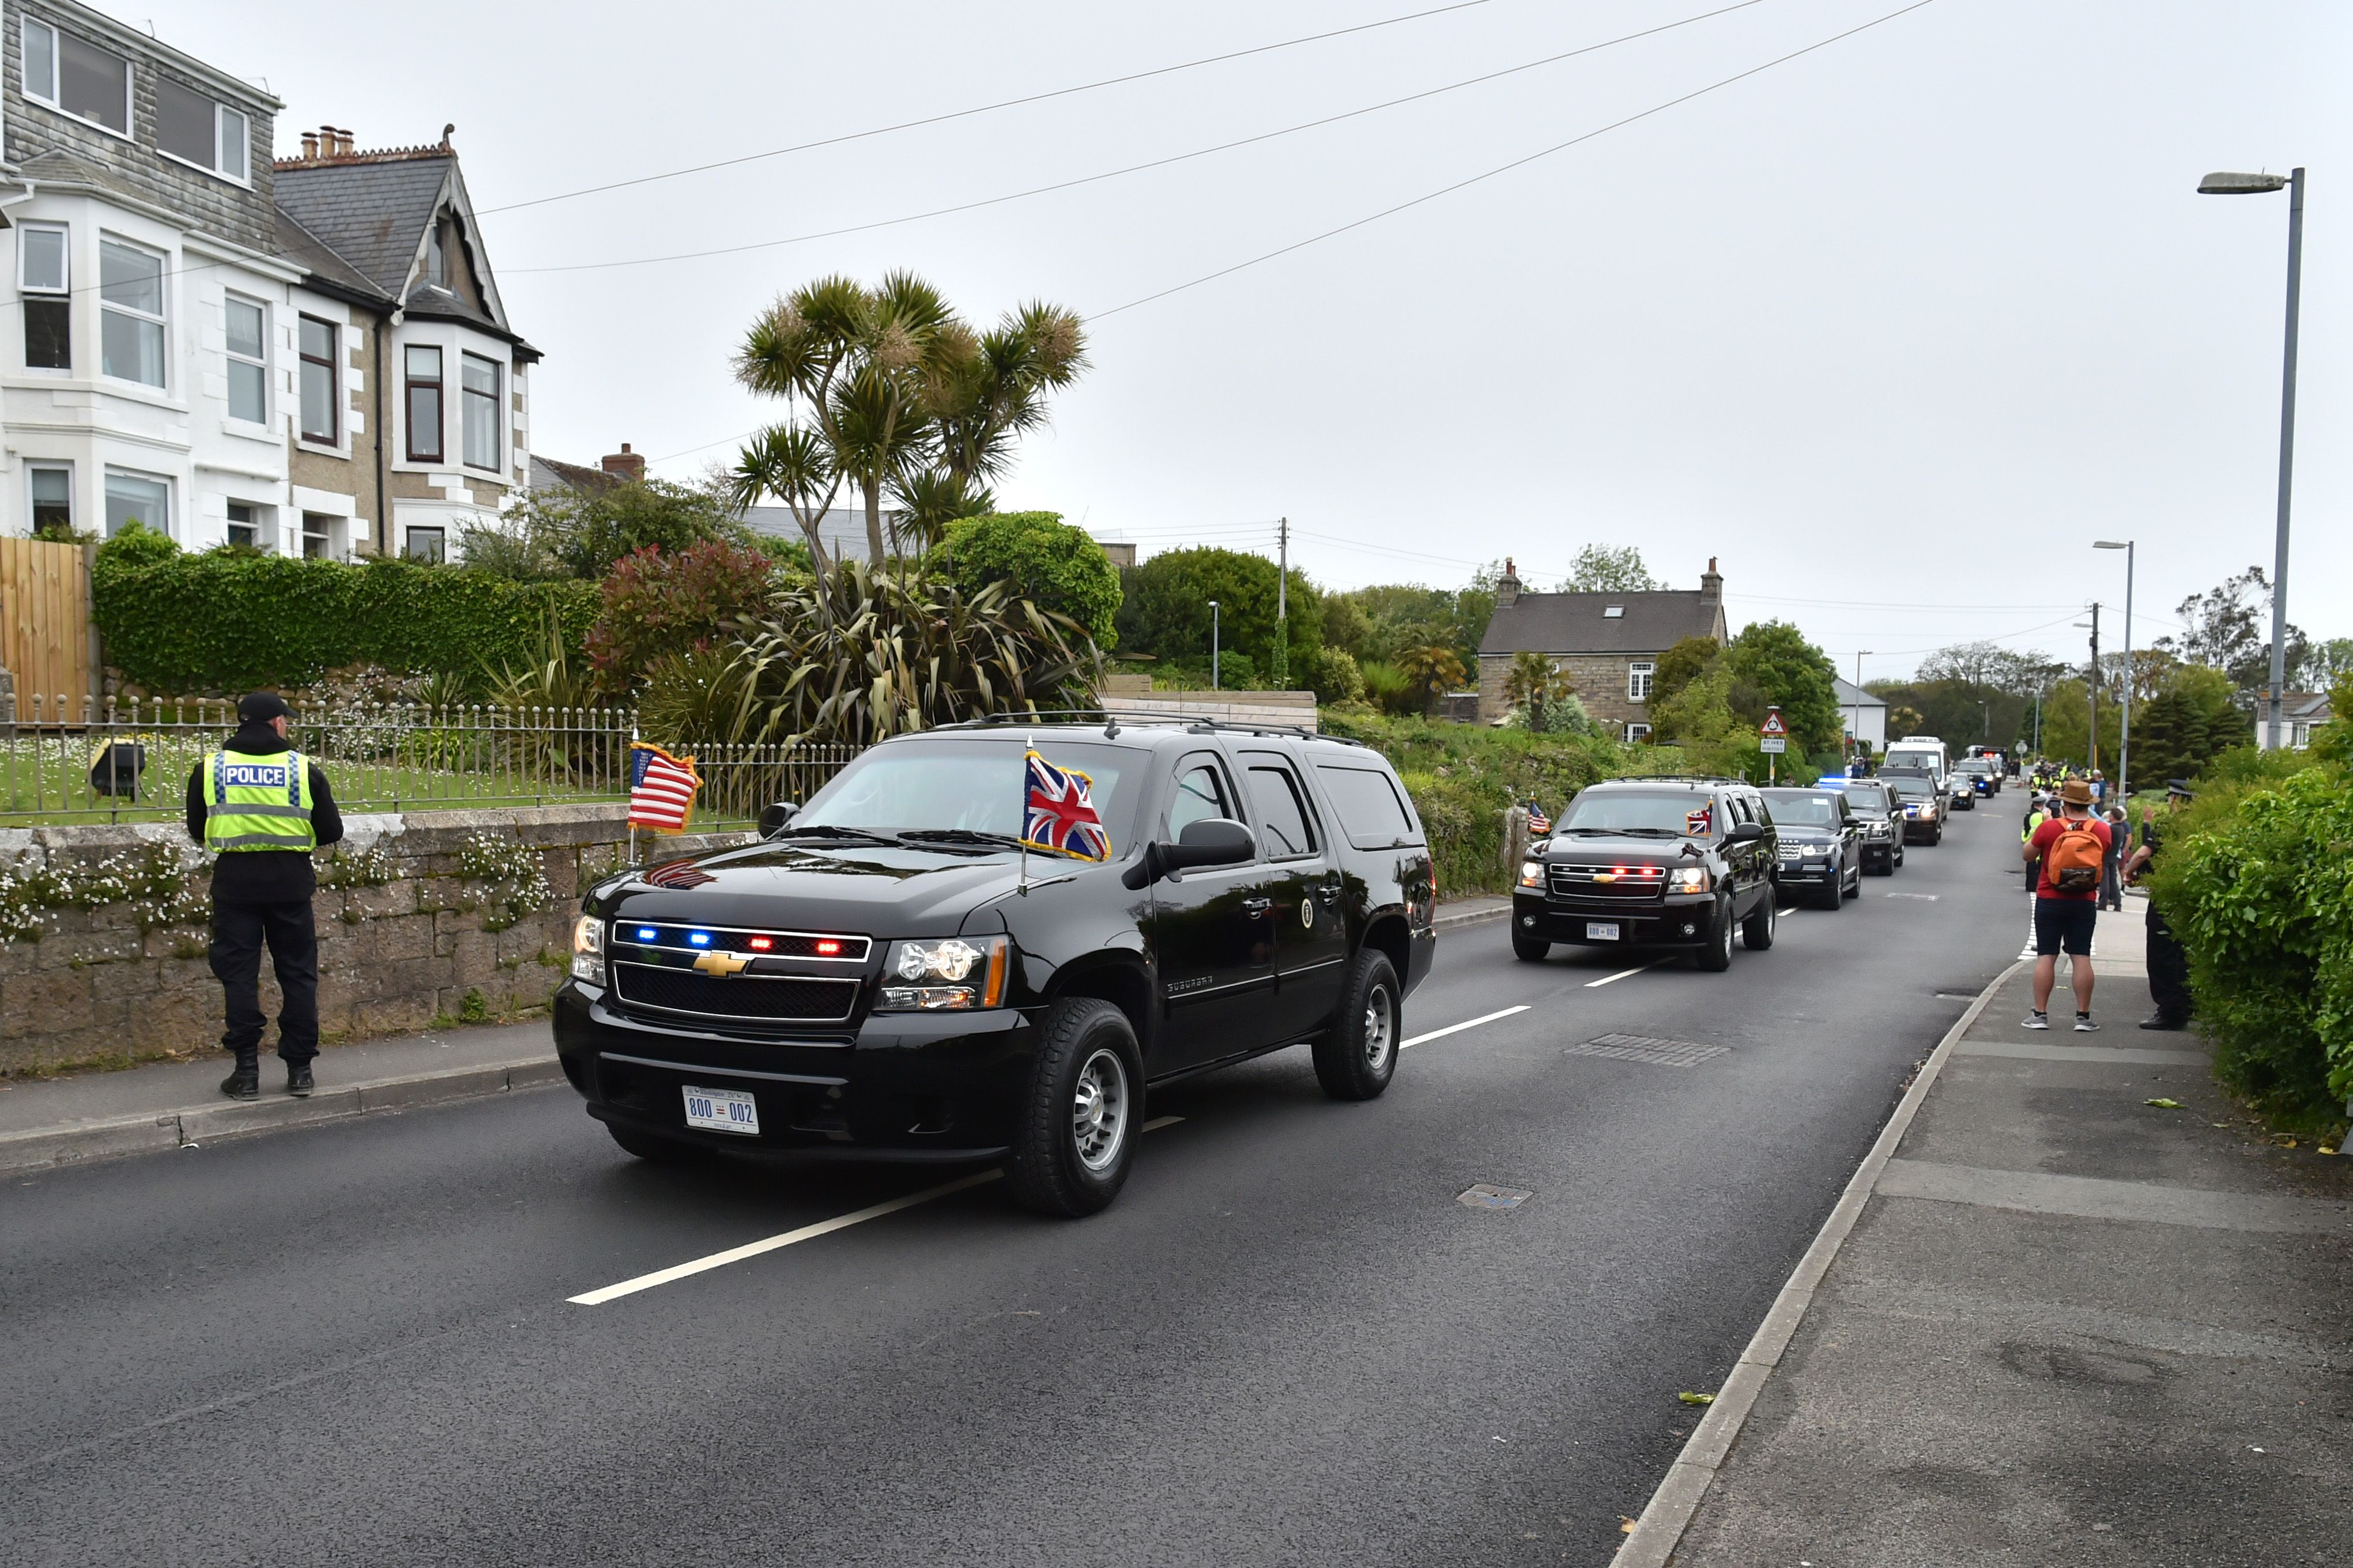 An SUV vehicle displaying both the UK and USA flags, forming part of the US motorcade carrying US President Joe Biden.